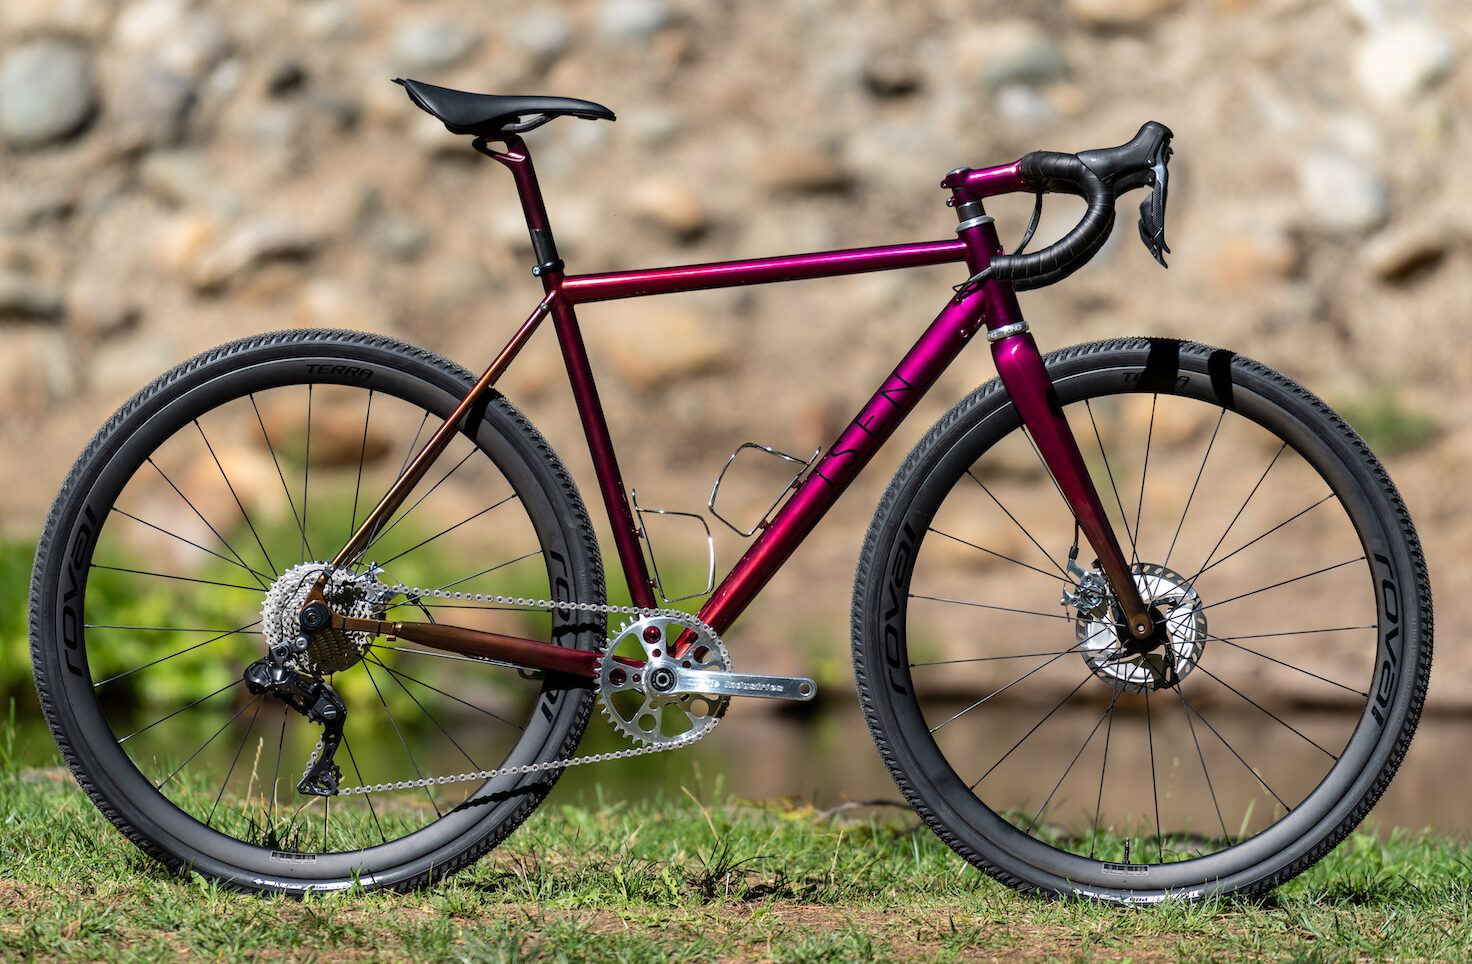 Gallery: Bikes of the Roval Terra Press Camp